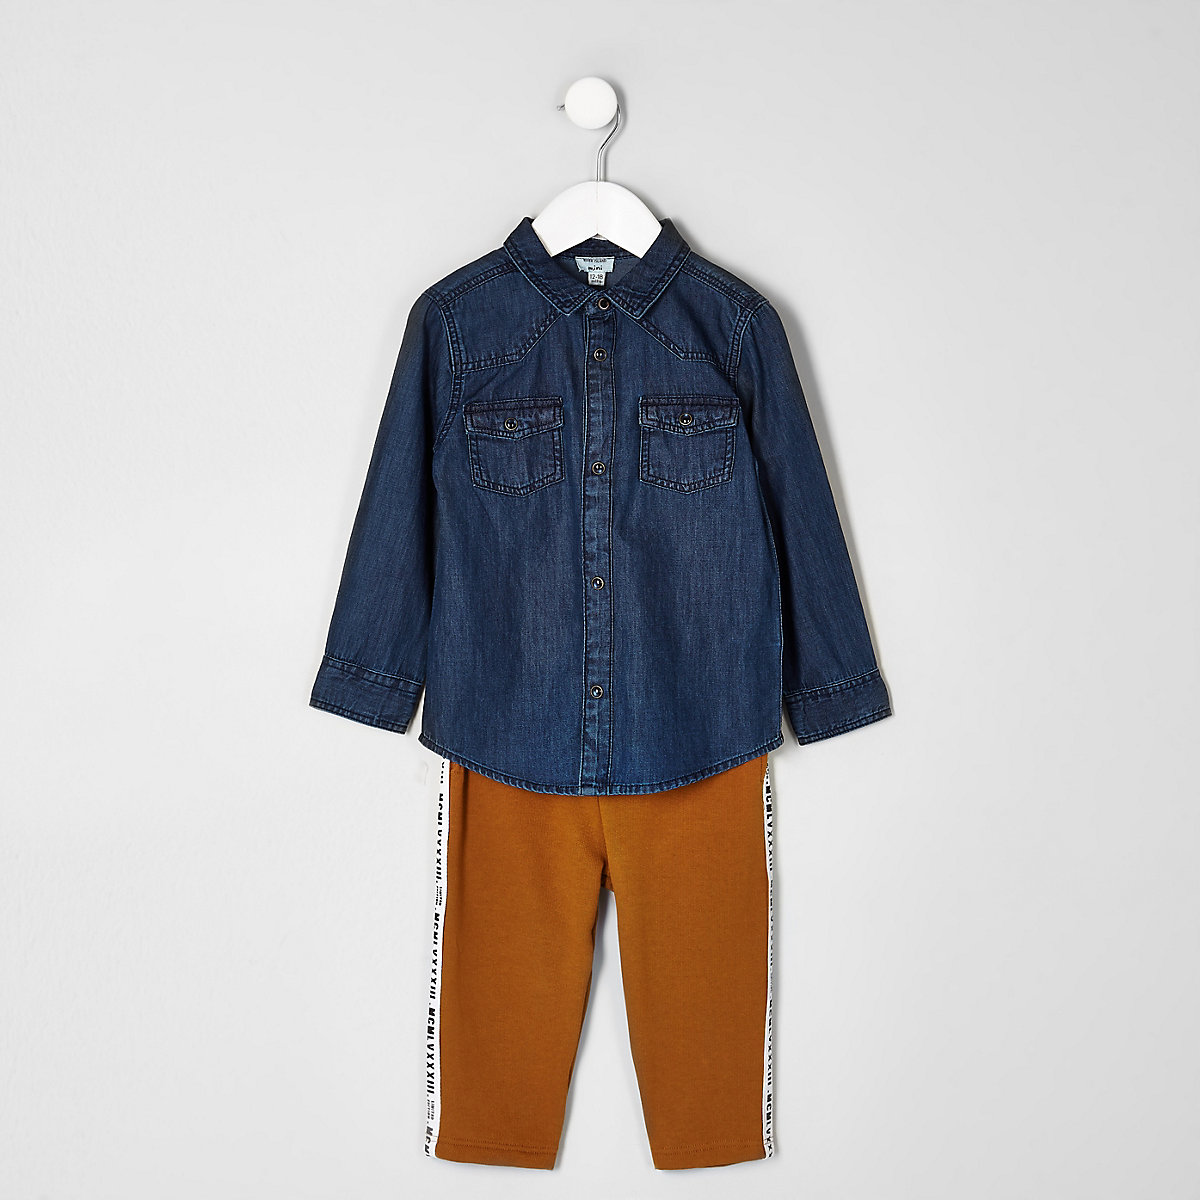 a75d94236 Mini boys denim shirt and jogger outfit - Baby Boys Outfits - Mini ...